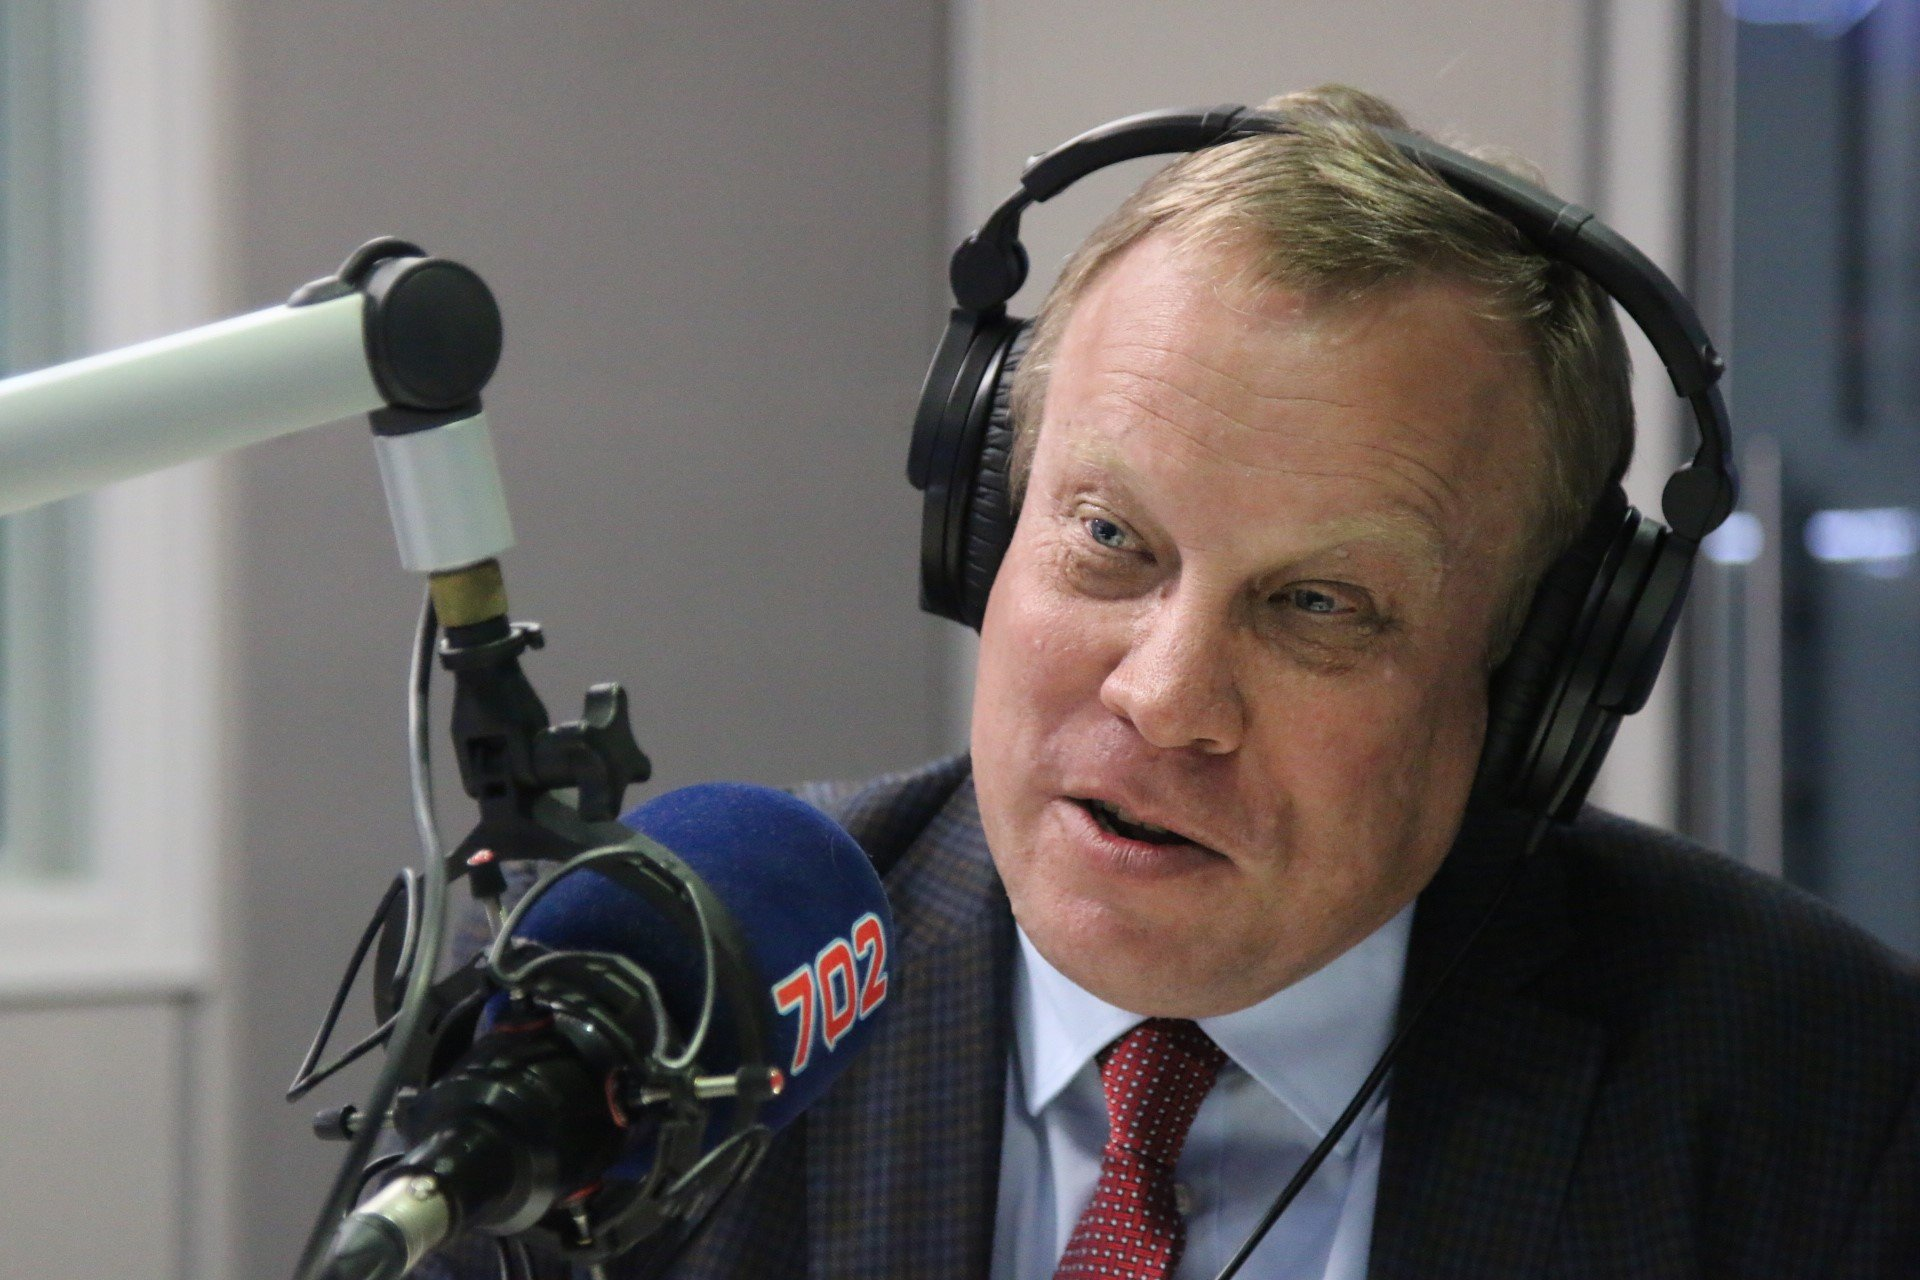 Sars acting Commissioner Mark Kingon wants tax to be boring. It won't be easy